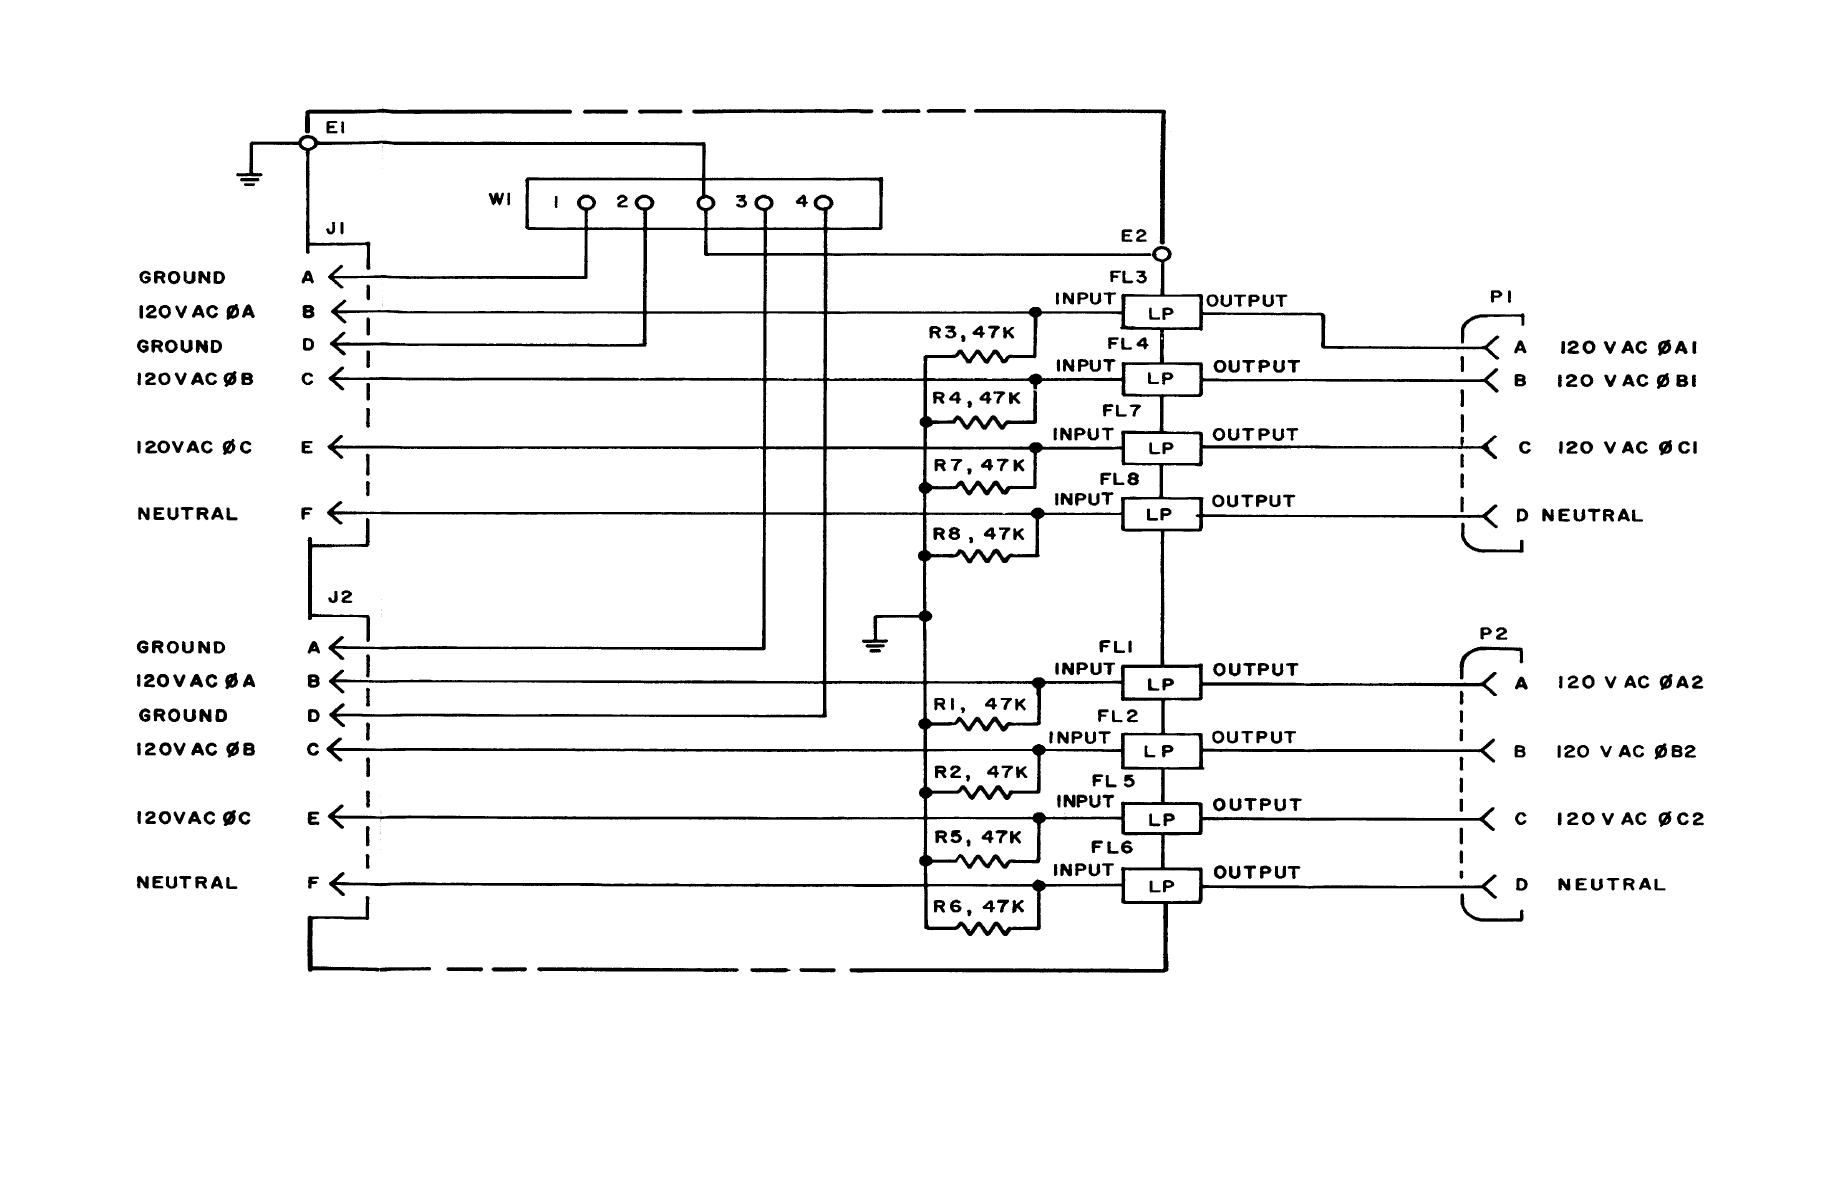 schematic wiring diagram schematic image wiring schematic wiring schematic image wiring diagram